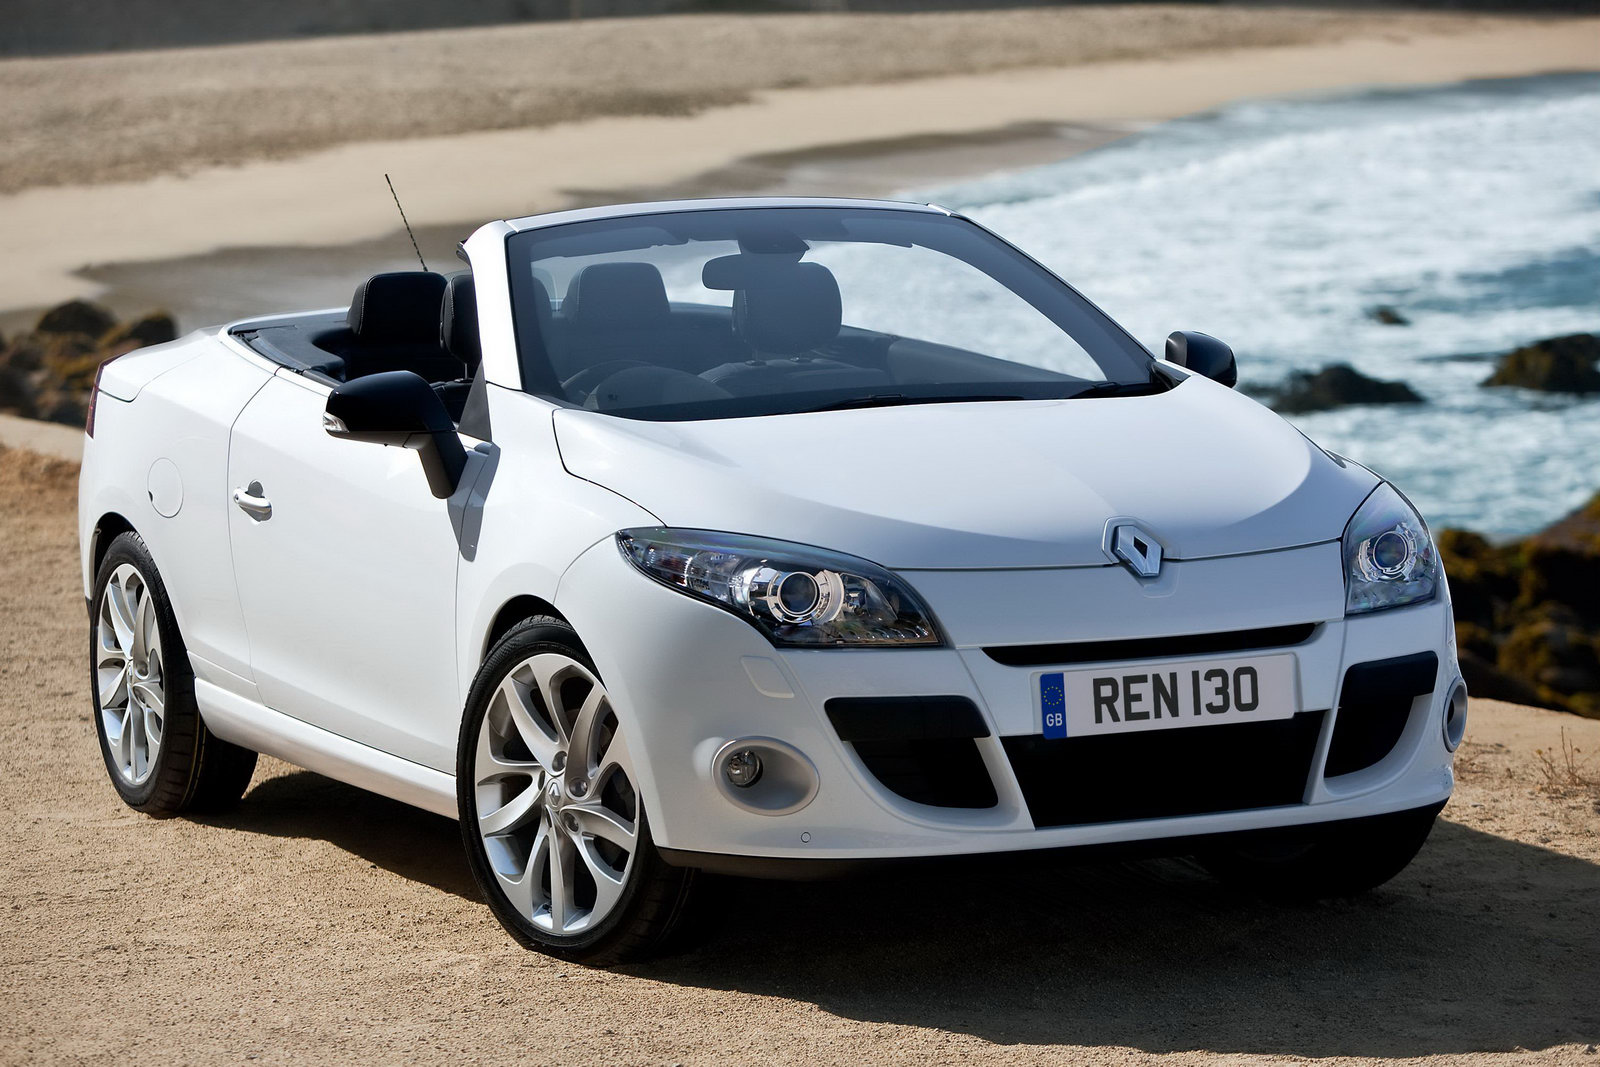 new renault m gane coup cabriolet to hit uk showrooms in july. Black Bedroom Furniture Sets. Home Design Ideas